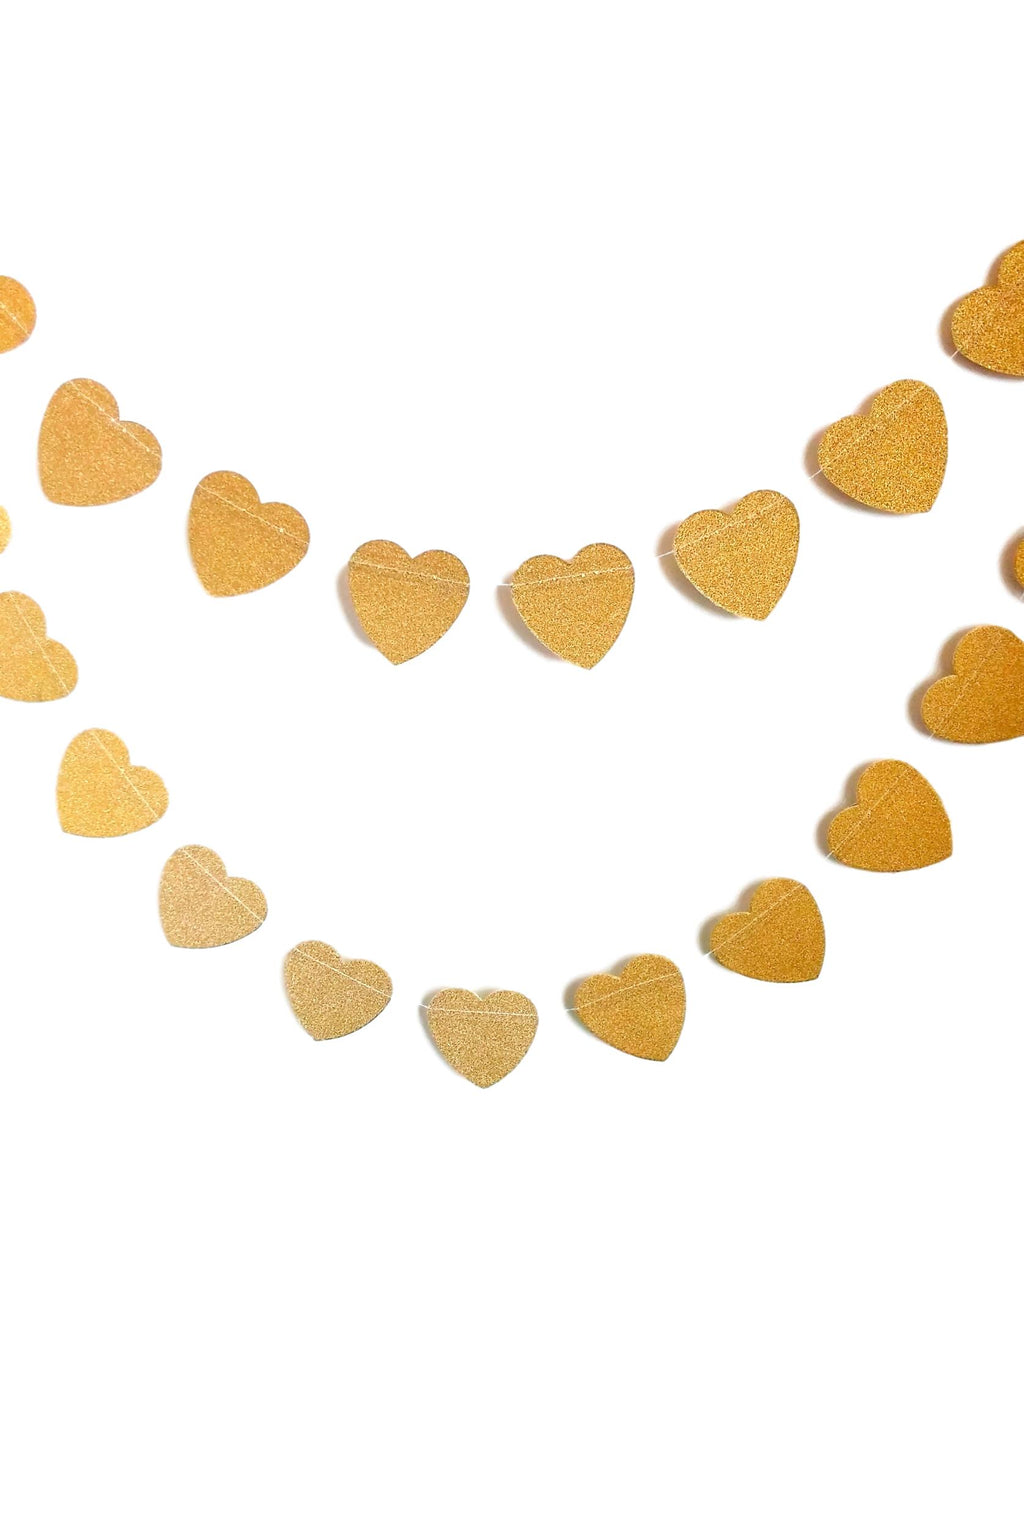 Gold glitter hearts garland